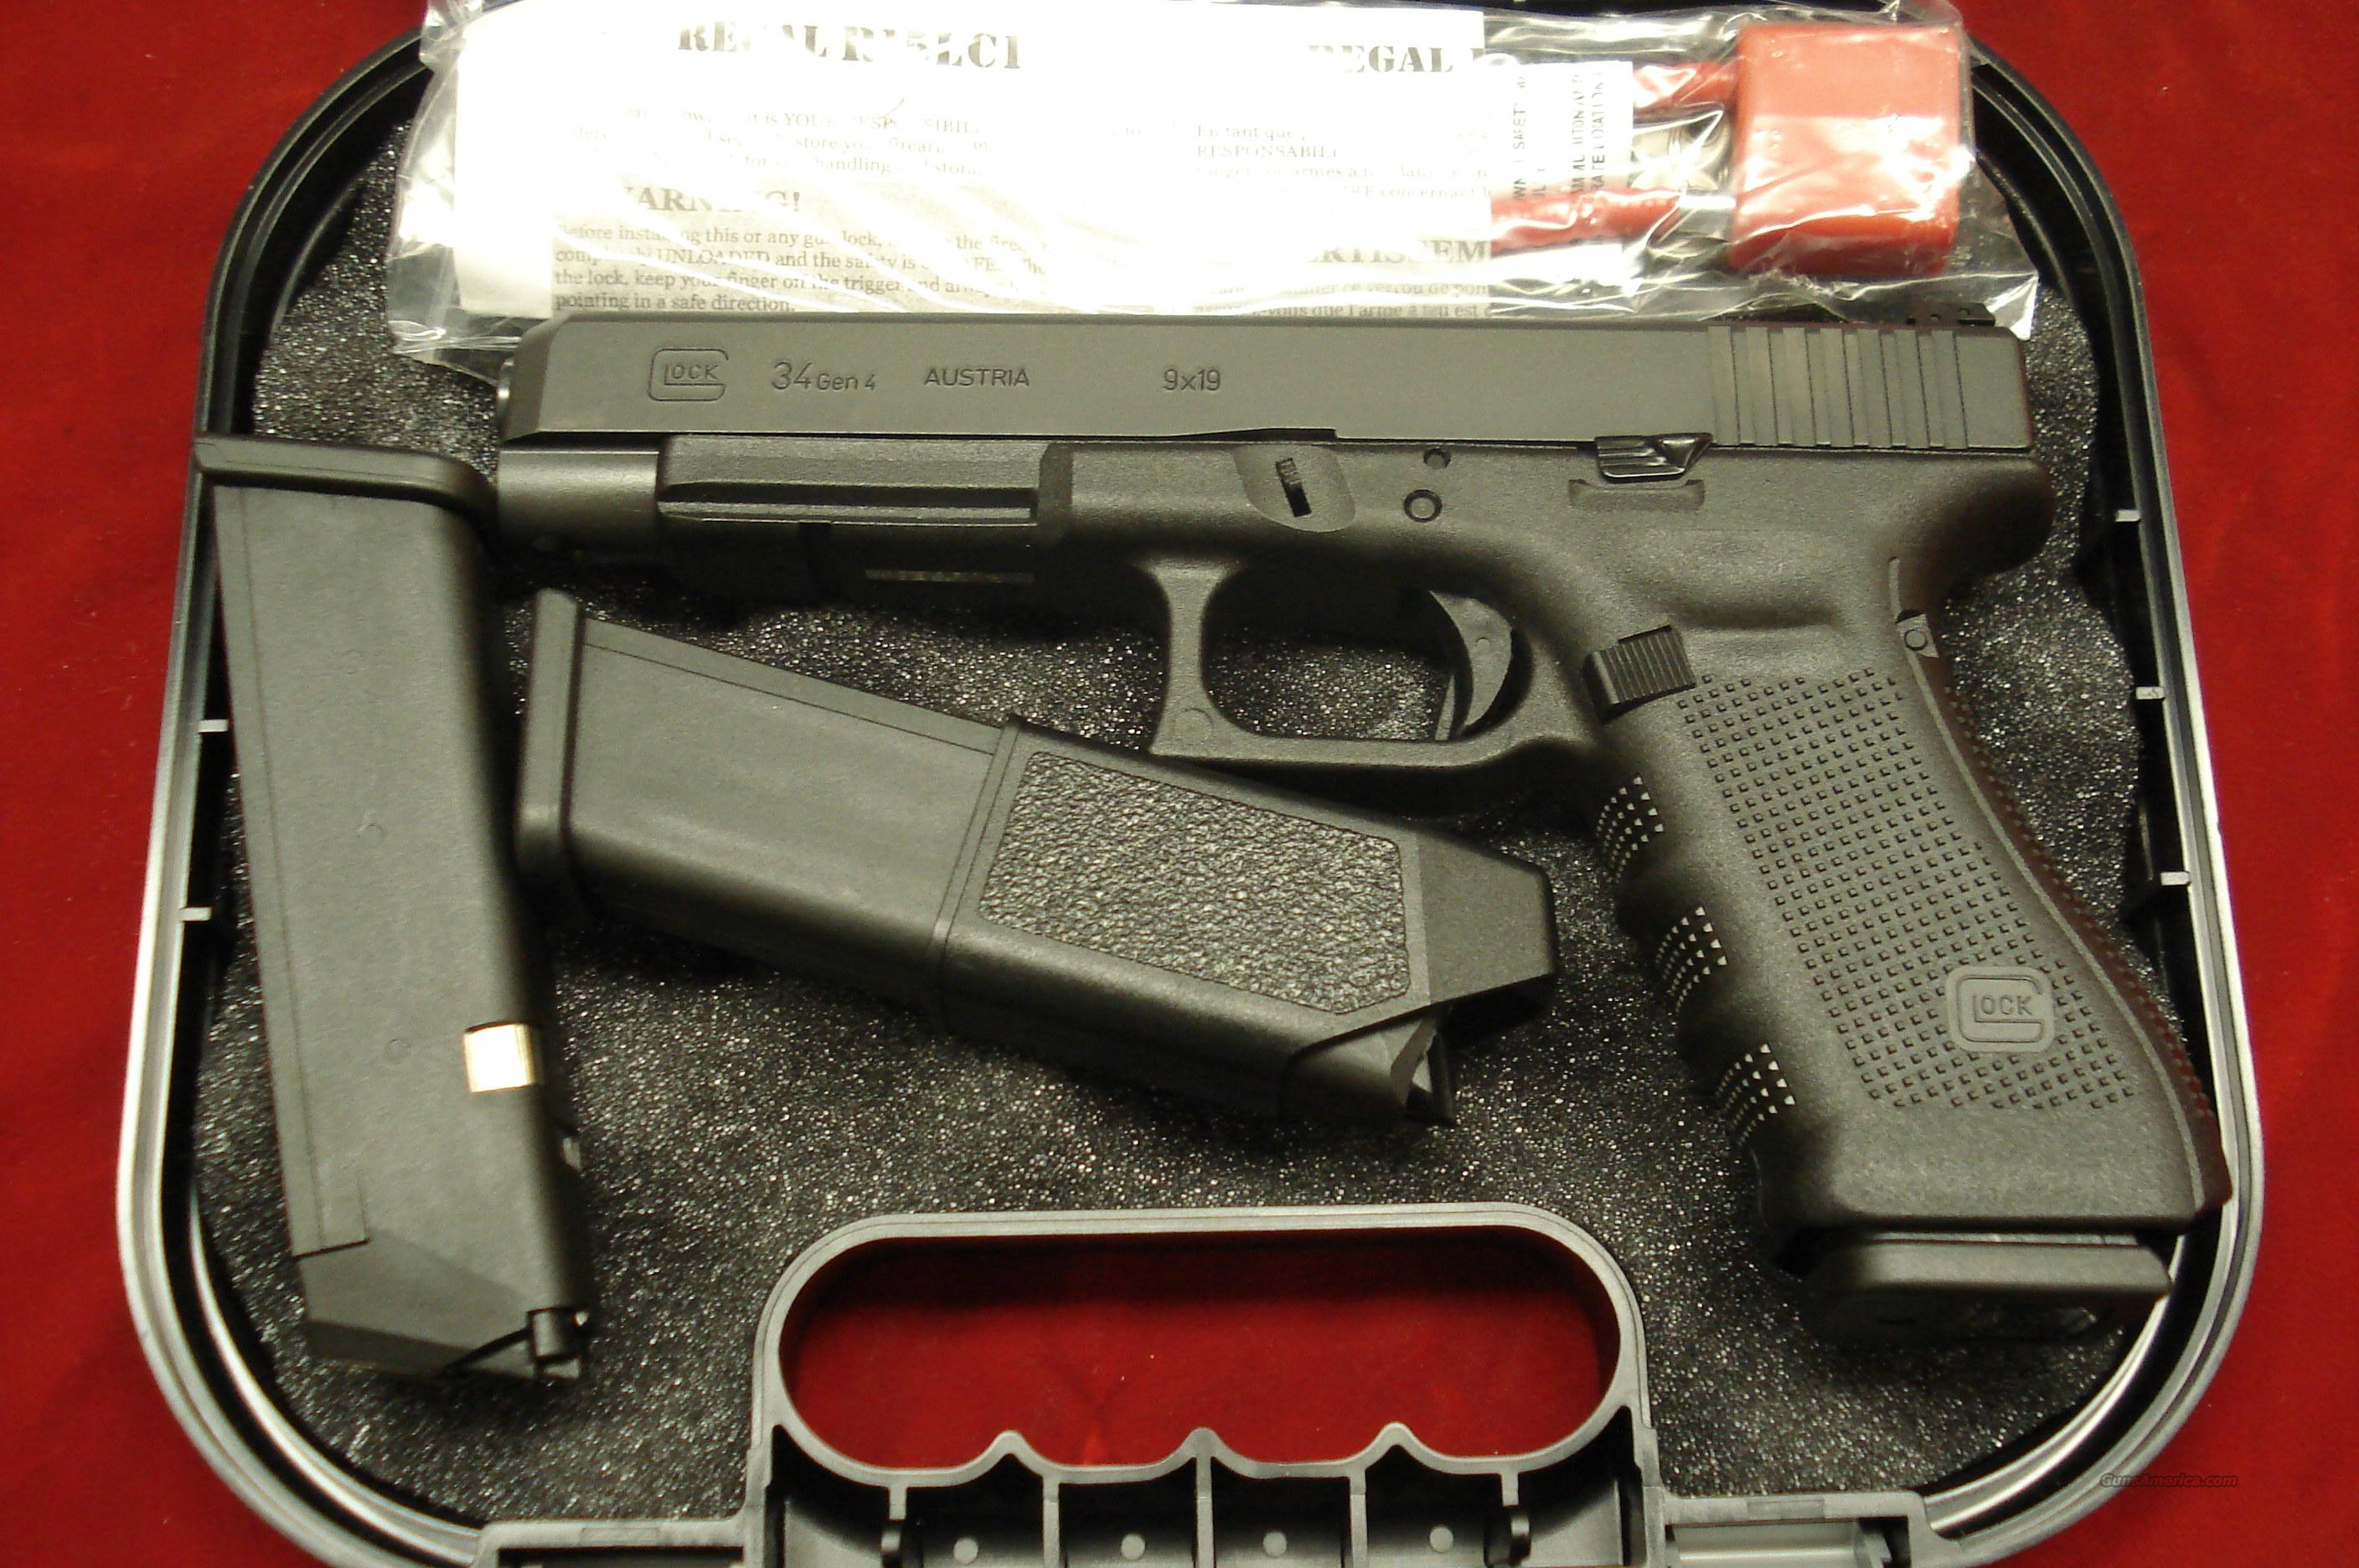 GLOCK MODEL 34 GEN4 9MM TACTICAL/PRACTICAL NEW  Guns > Pistols > Glock Pistols > 17